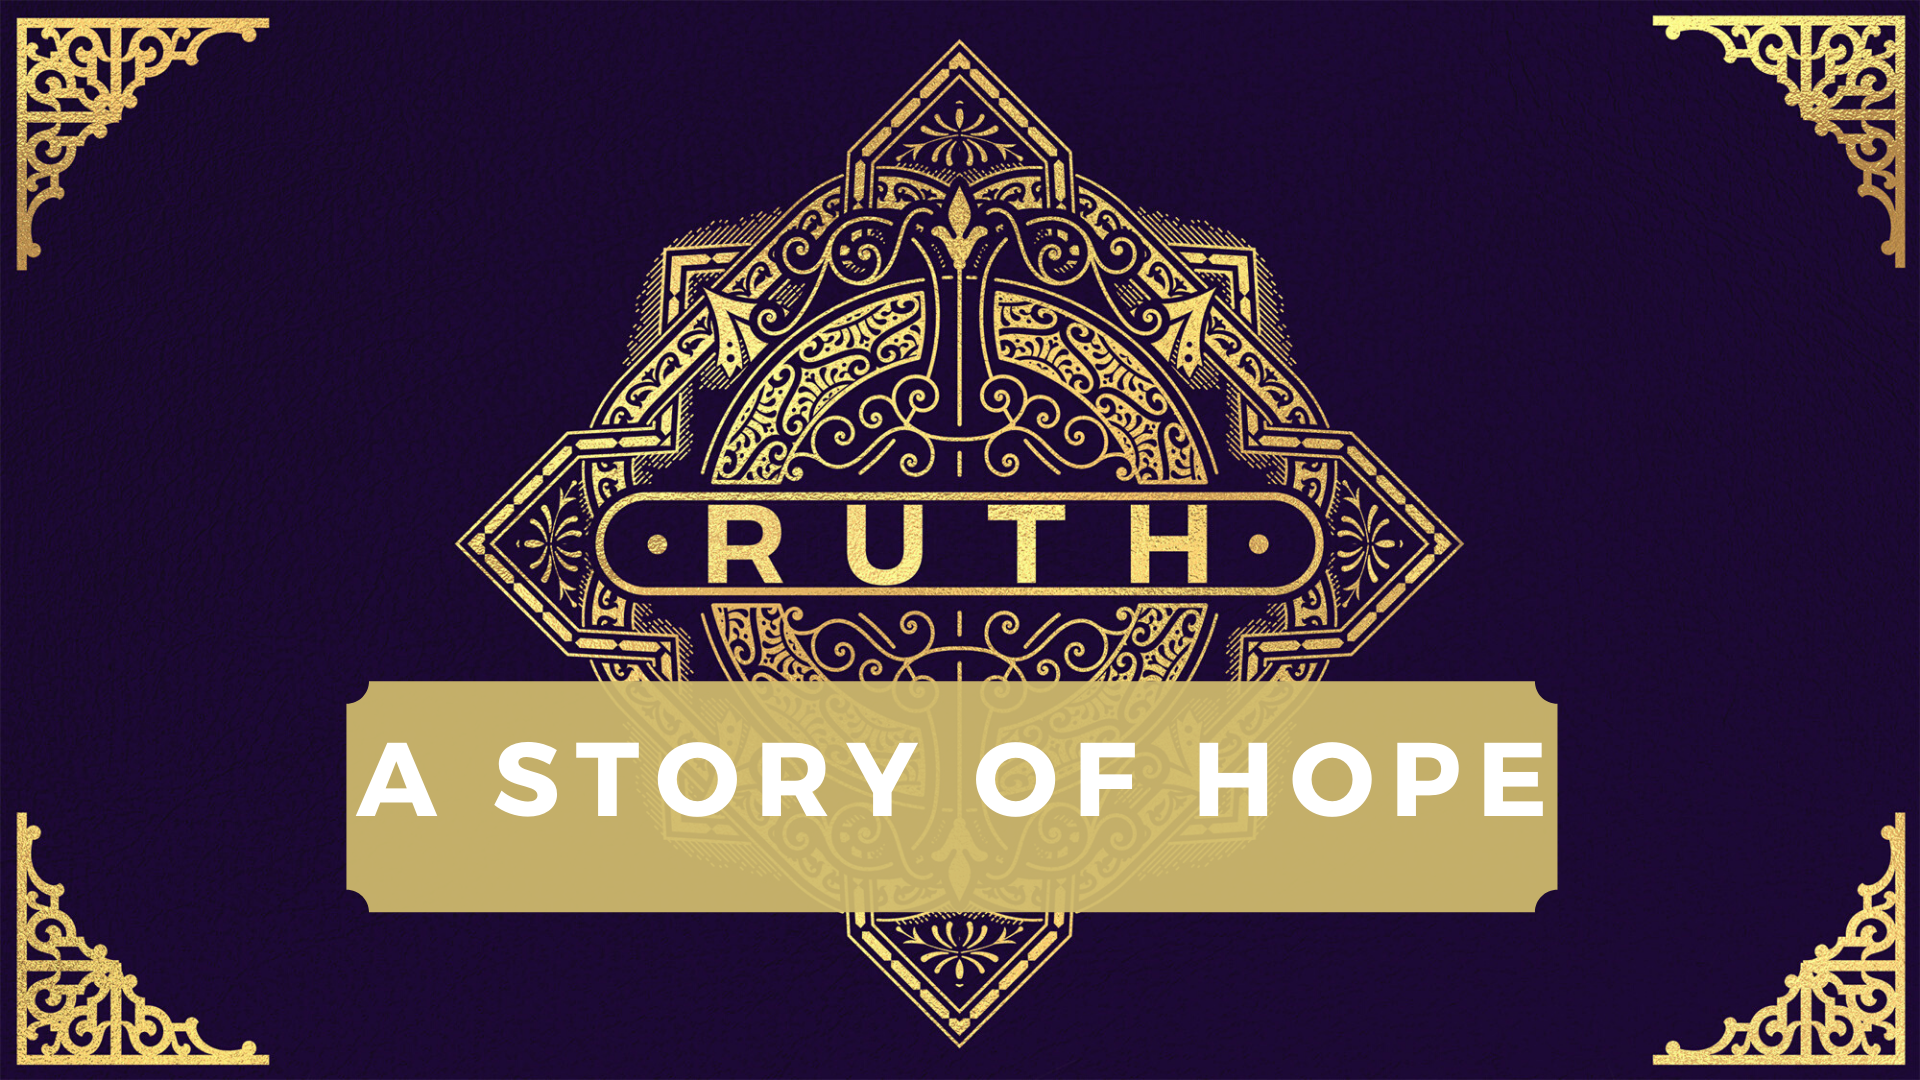 Ruth: A Story of Hope